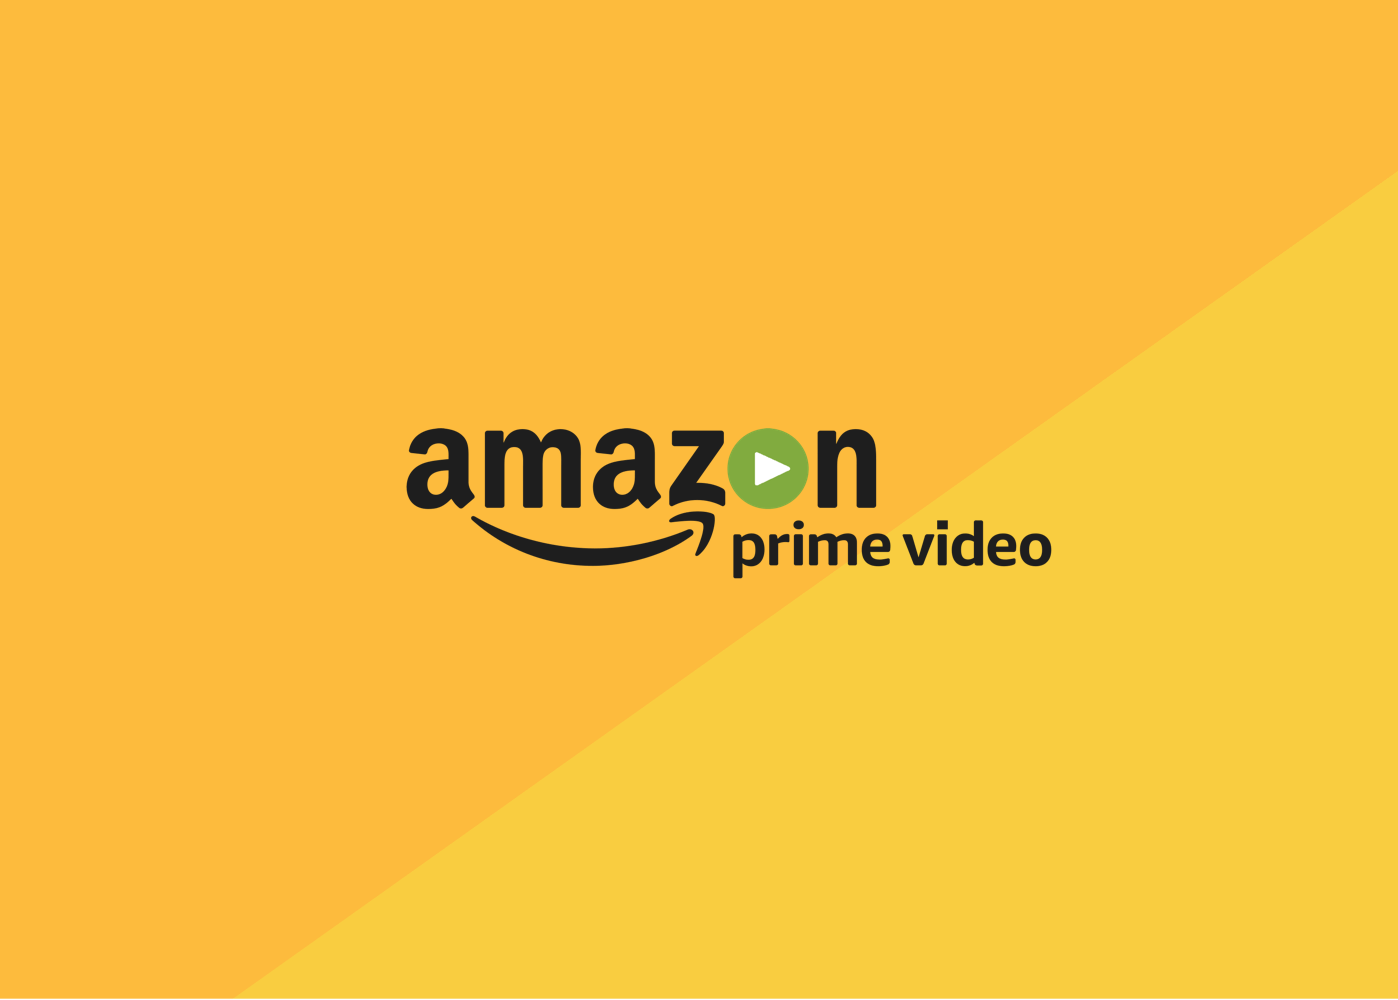 amazon_thumbnail_2x